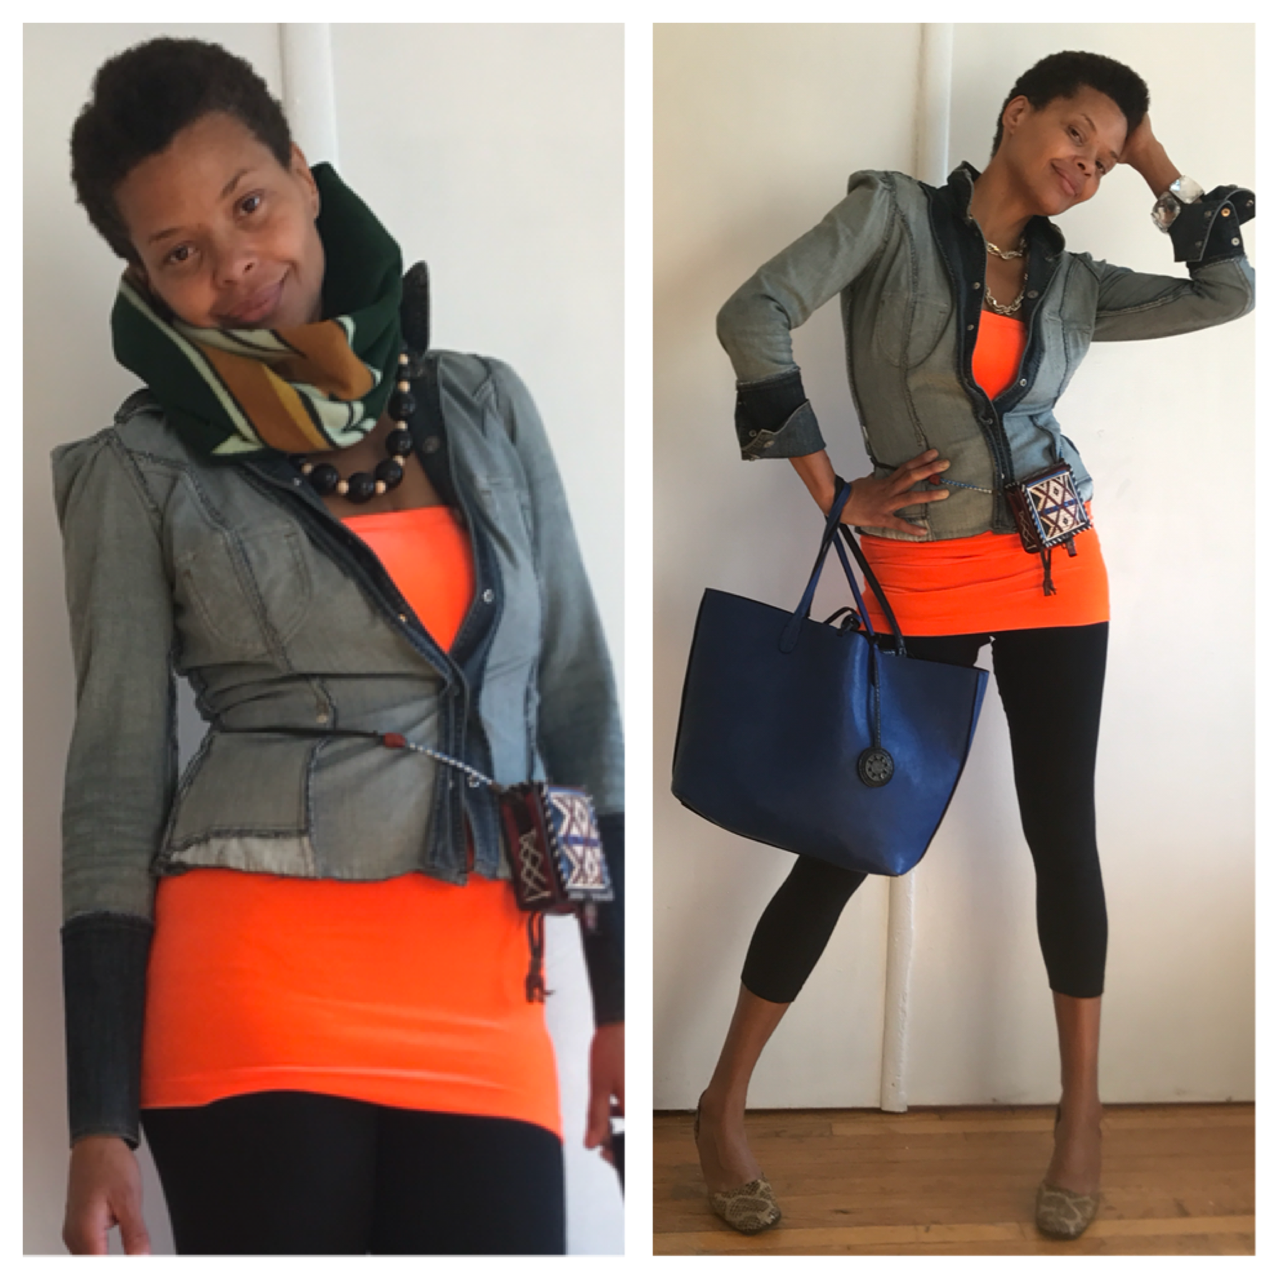 Naturally Fashionable- Mix & Match Pieces From Your Closet For Fun Fall Looks!